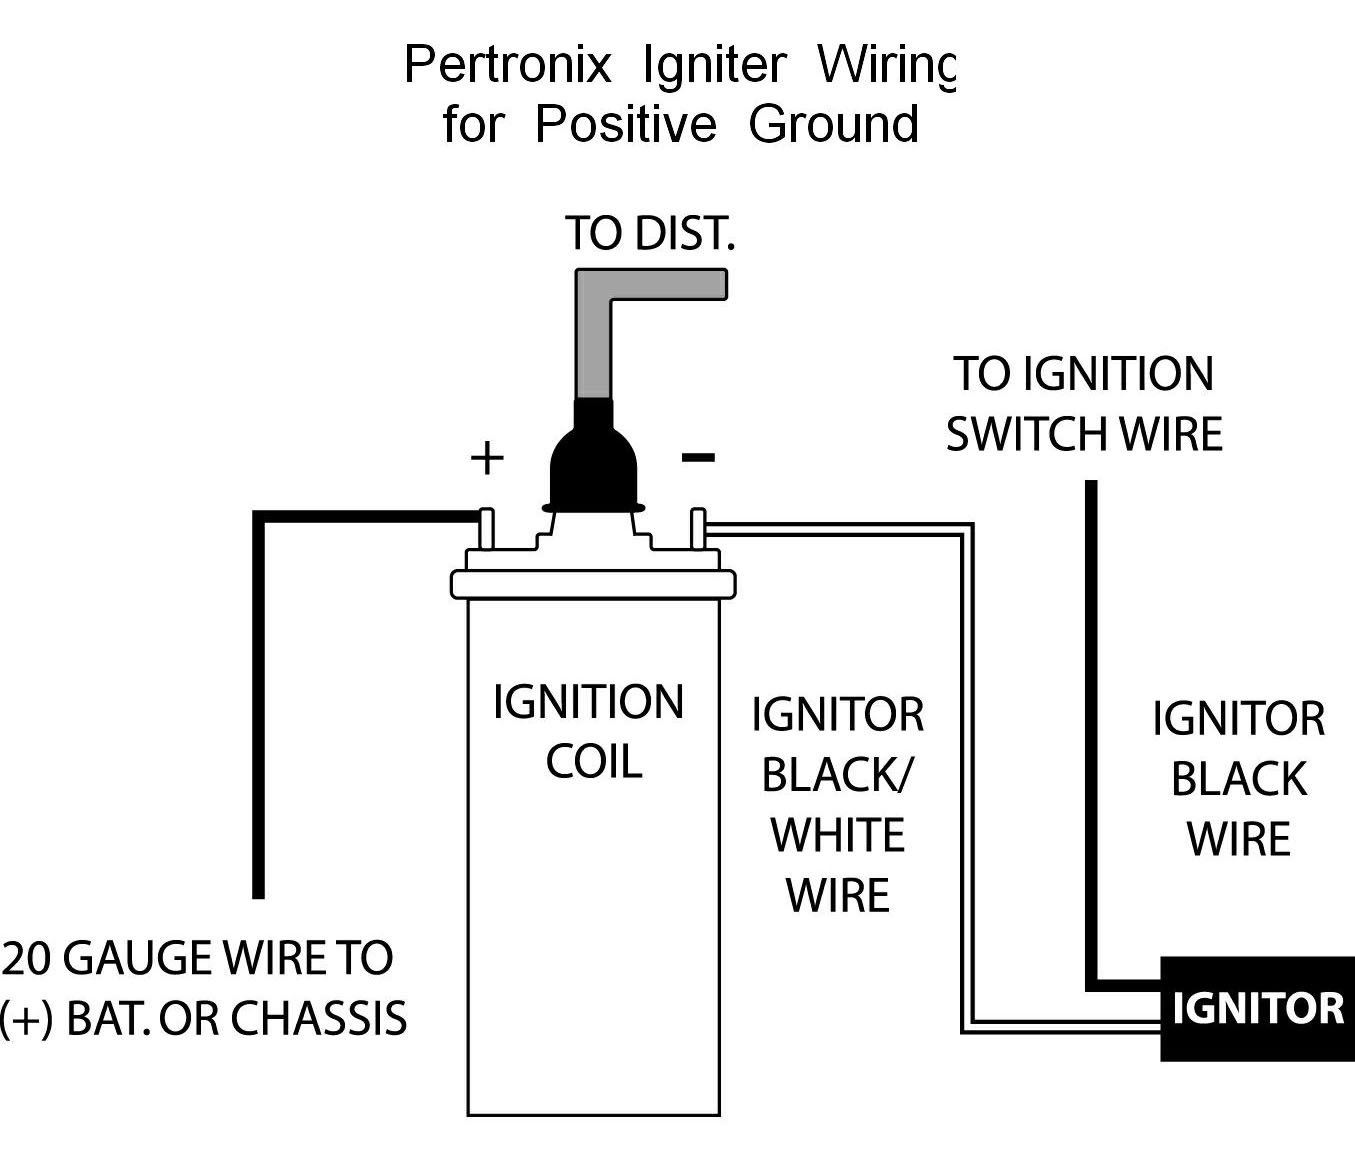 6 volt coil wiring diagram wiring library 6 Volt Positive Ground Ignition Wiring Diagram pertronix positive ground wiring rh ttalk info 6 volt to 12 volt on wire conversion wiring